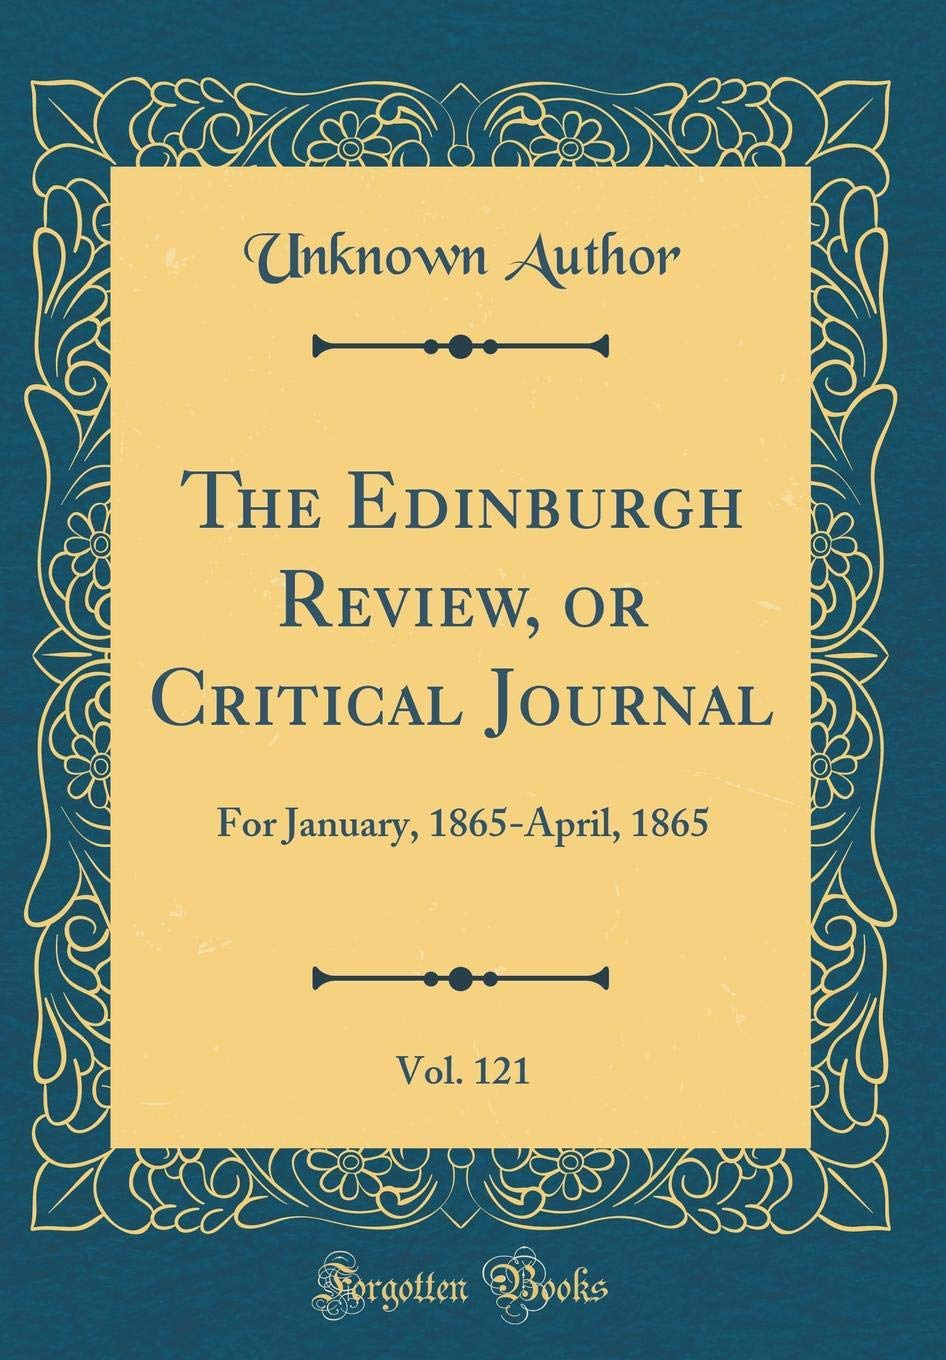 Download The Edinburgh Review, or Critical Journal, Vol. 121: For January, 1865-April, 1865 (Classic Reprint) pdf epub